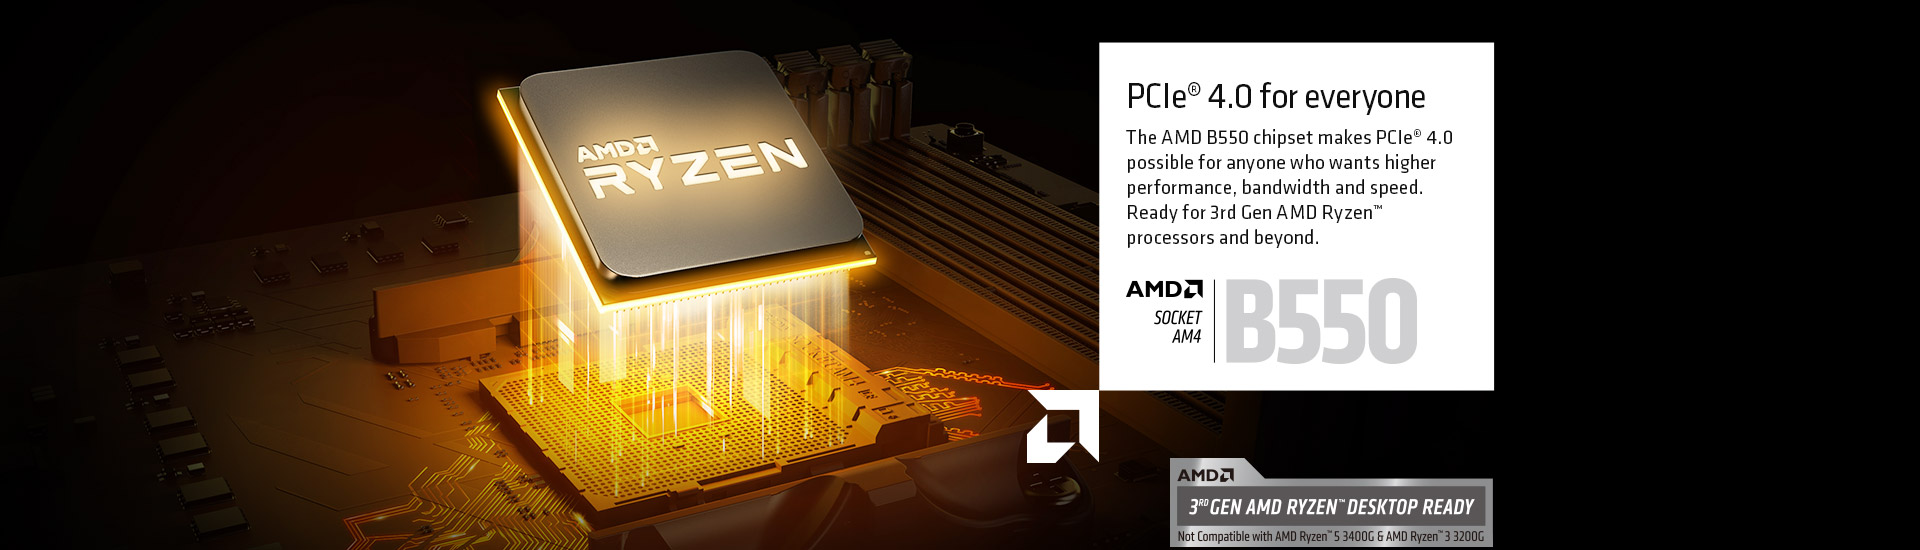 AMD Support PCIE 4